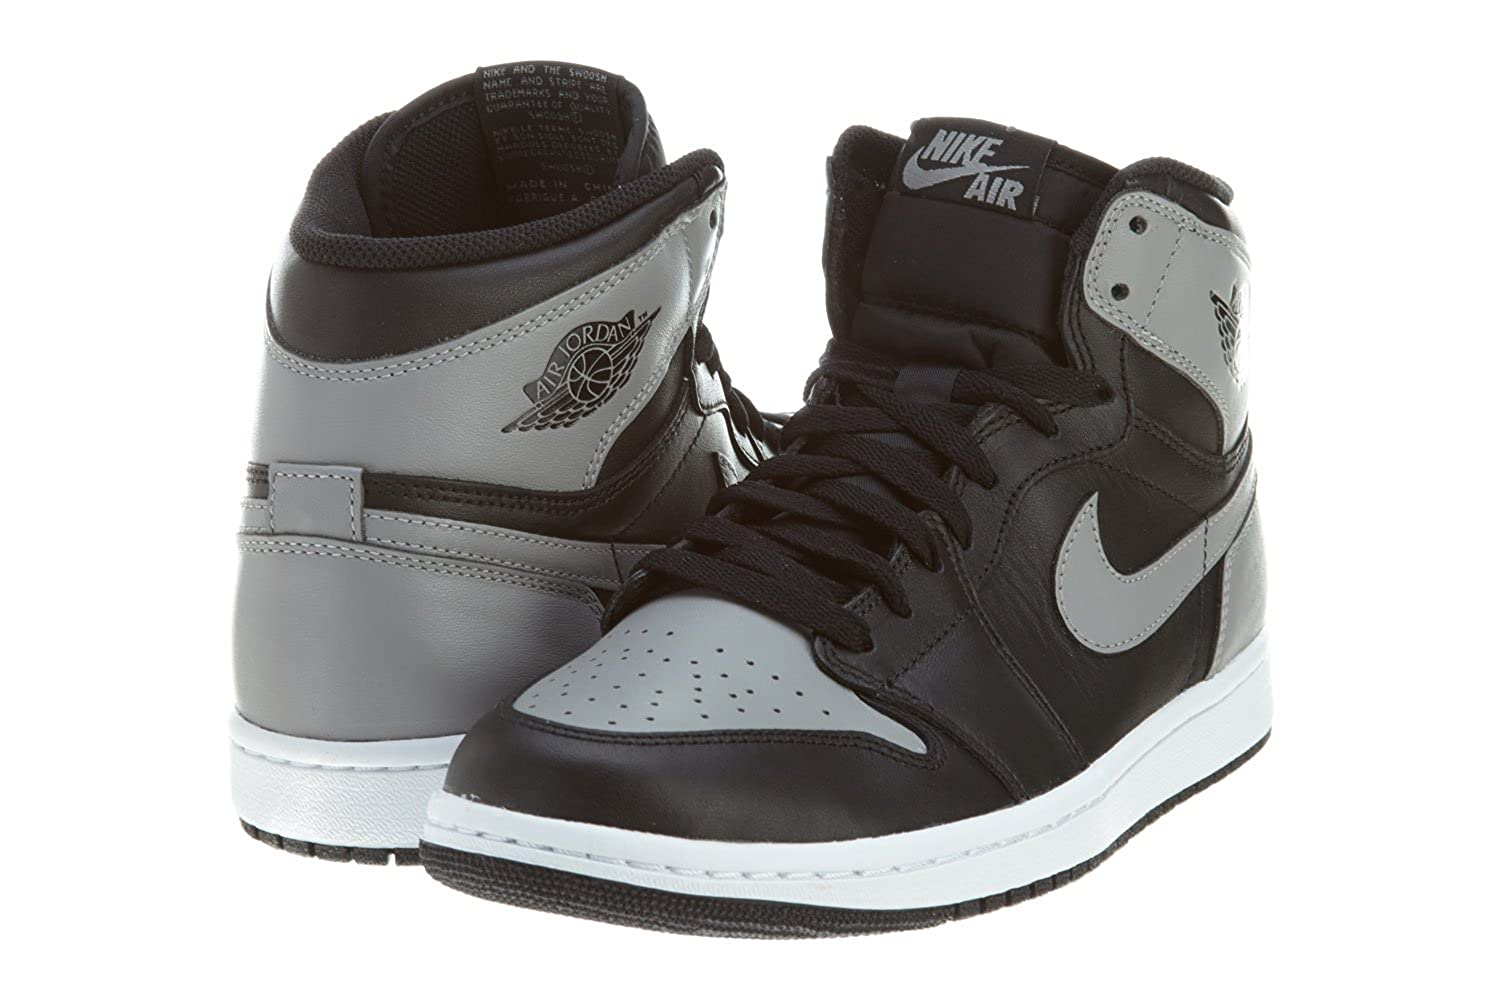 AIR JORDAN - エアジョーダン - AIR JORDAN 1 RETRO HIGH OG 'SHADOW' - 555088-014 - SIZE 13 (メンズ) B00S1RHASO